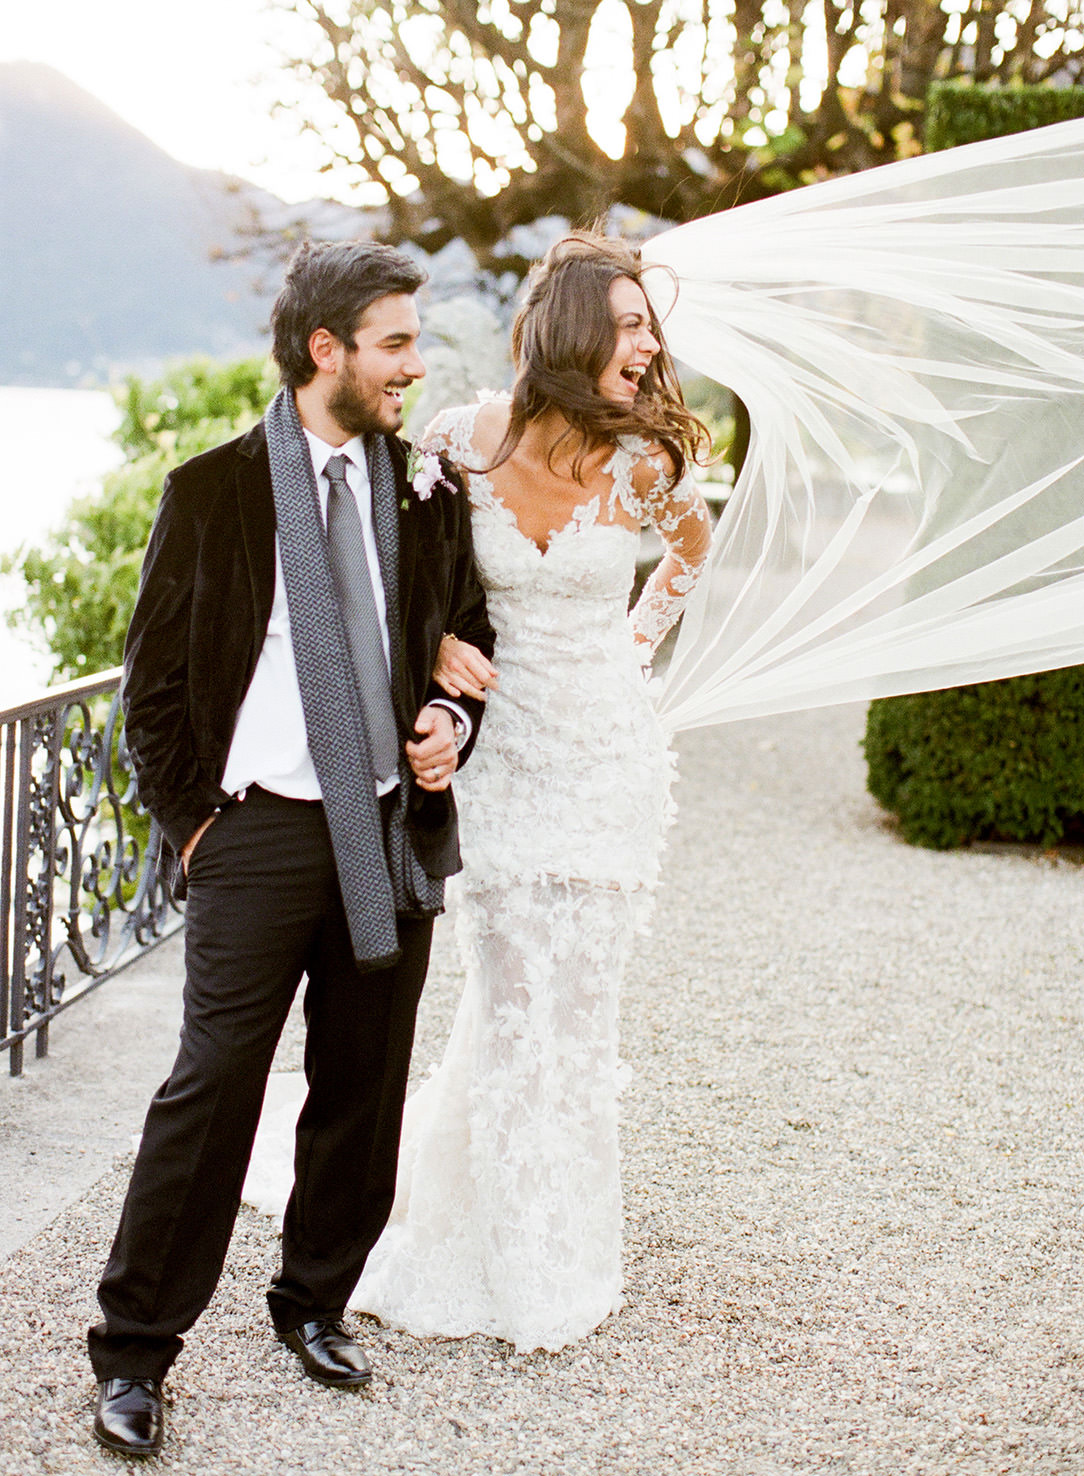 villa balbiano wedding in lake como